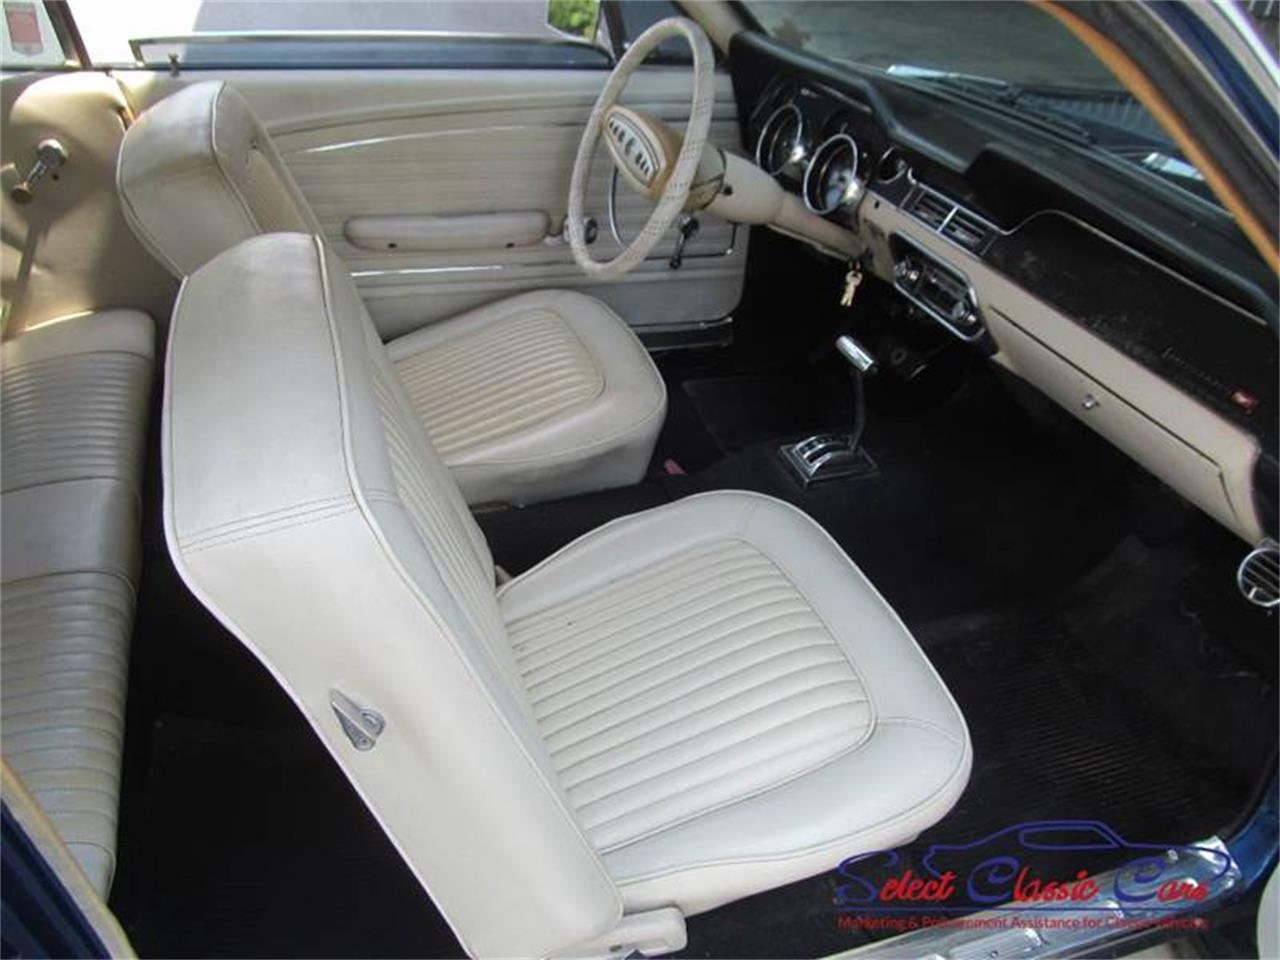 1968 Ford Mustang for sale in Hiram, GA – photo 20